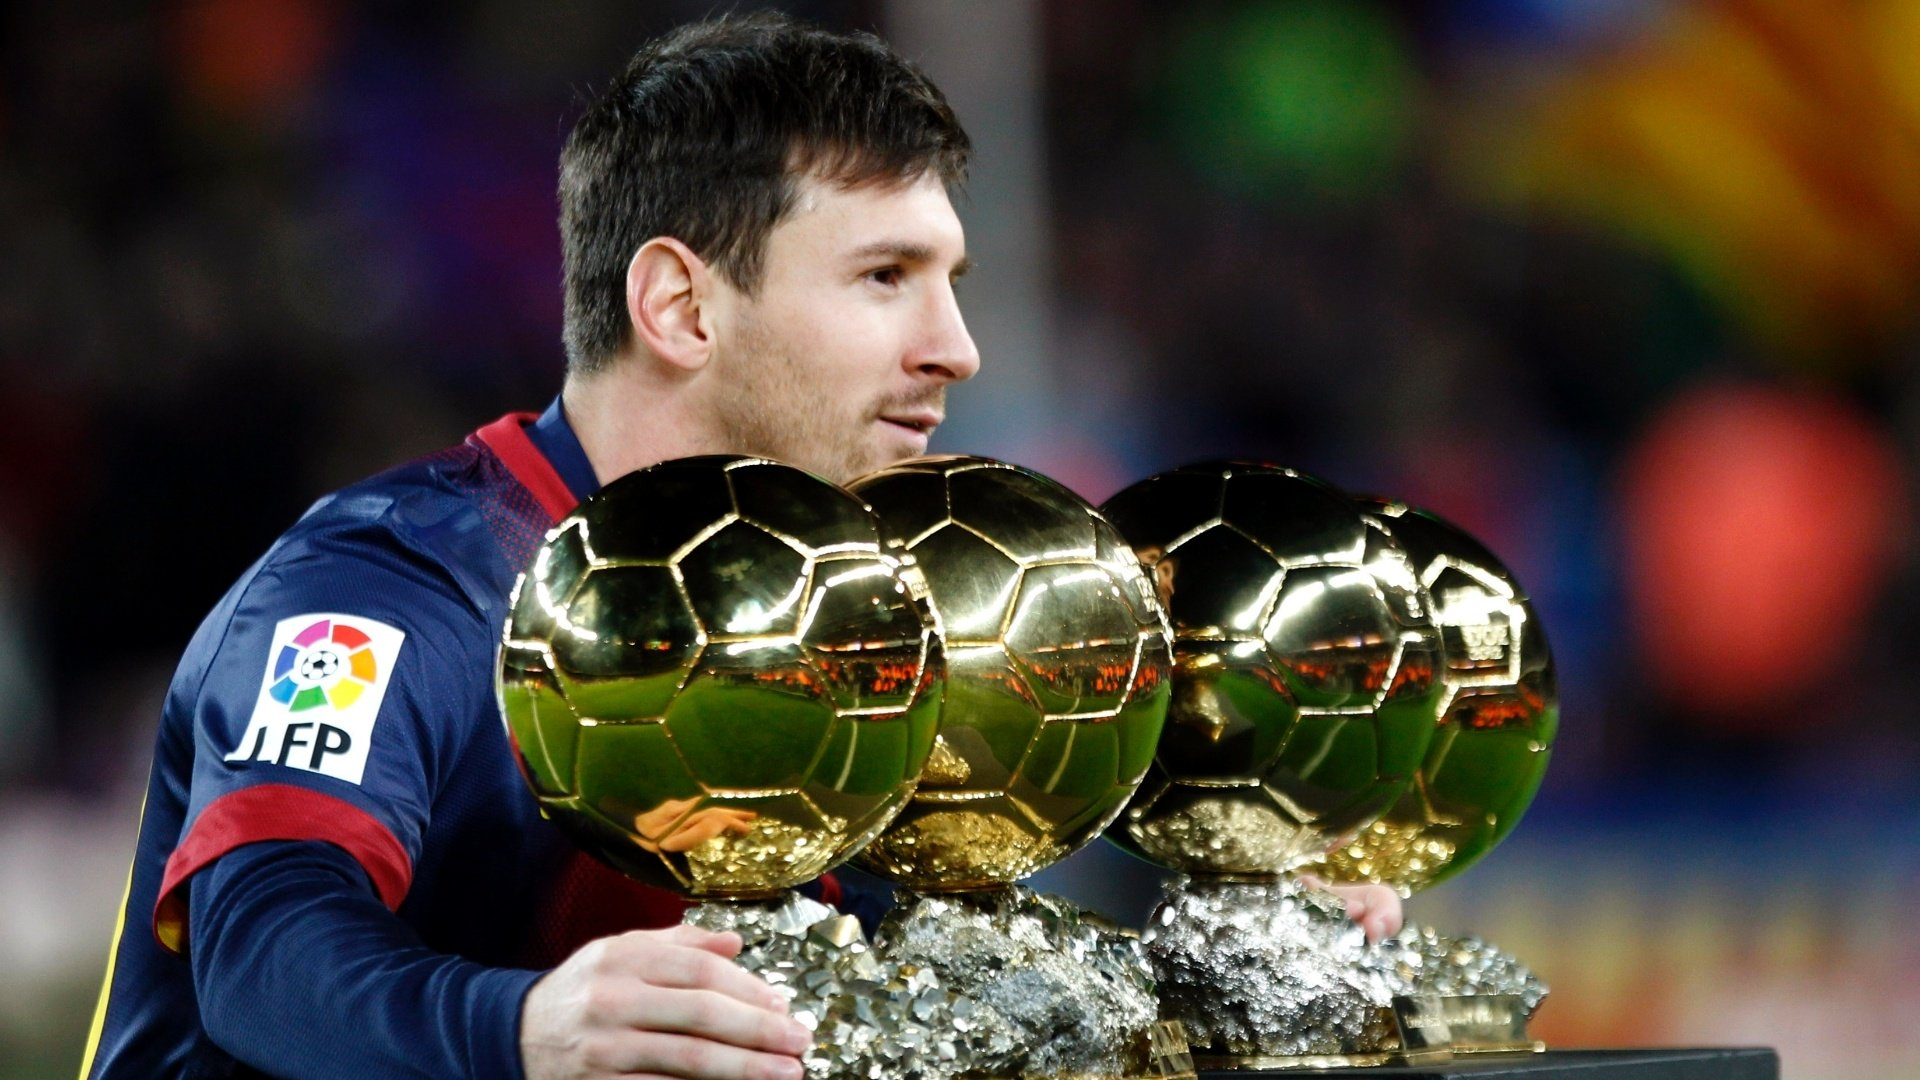 Lionel-Messi-Best-Wallpaper-Desktop-webstudy.pk